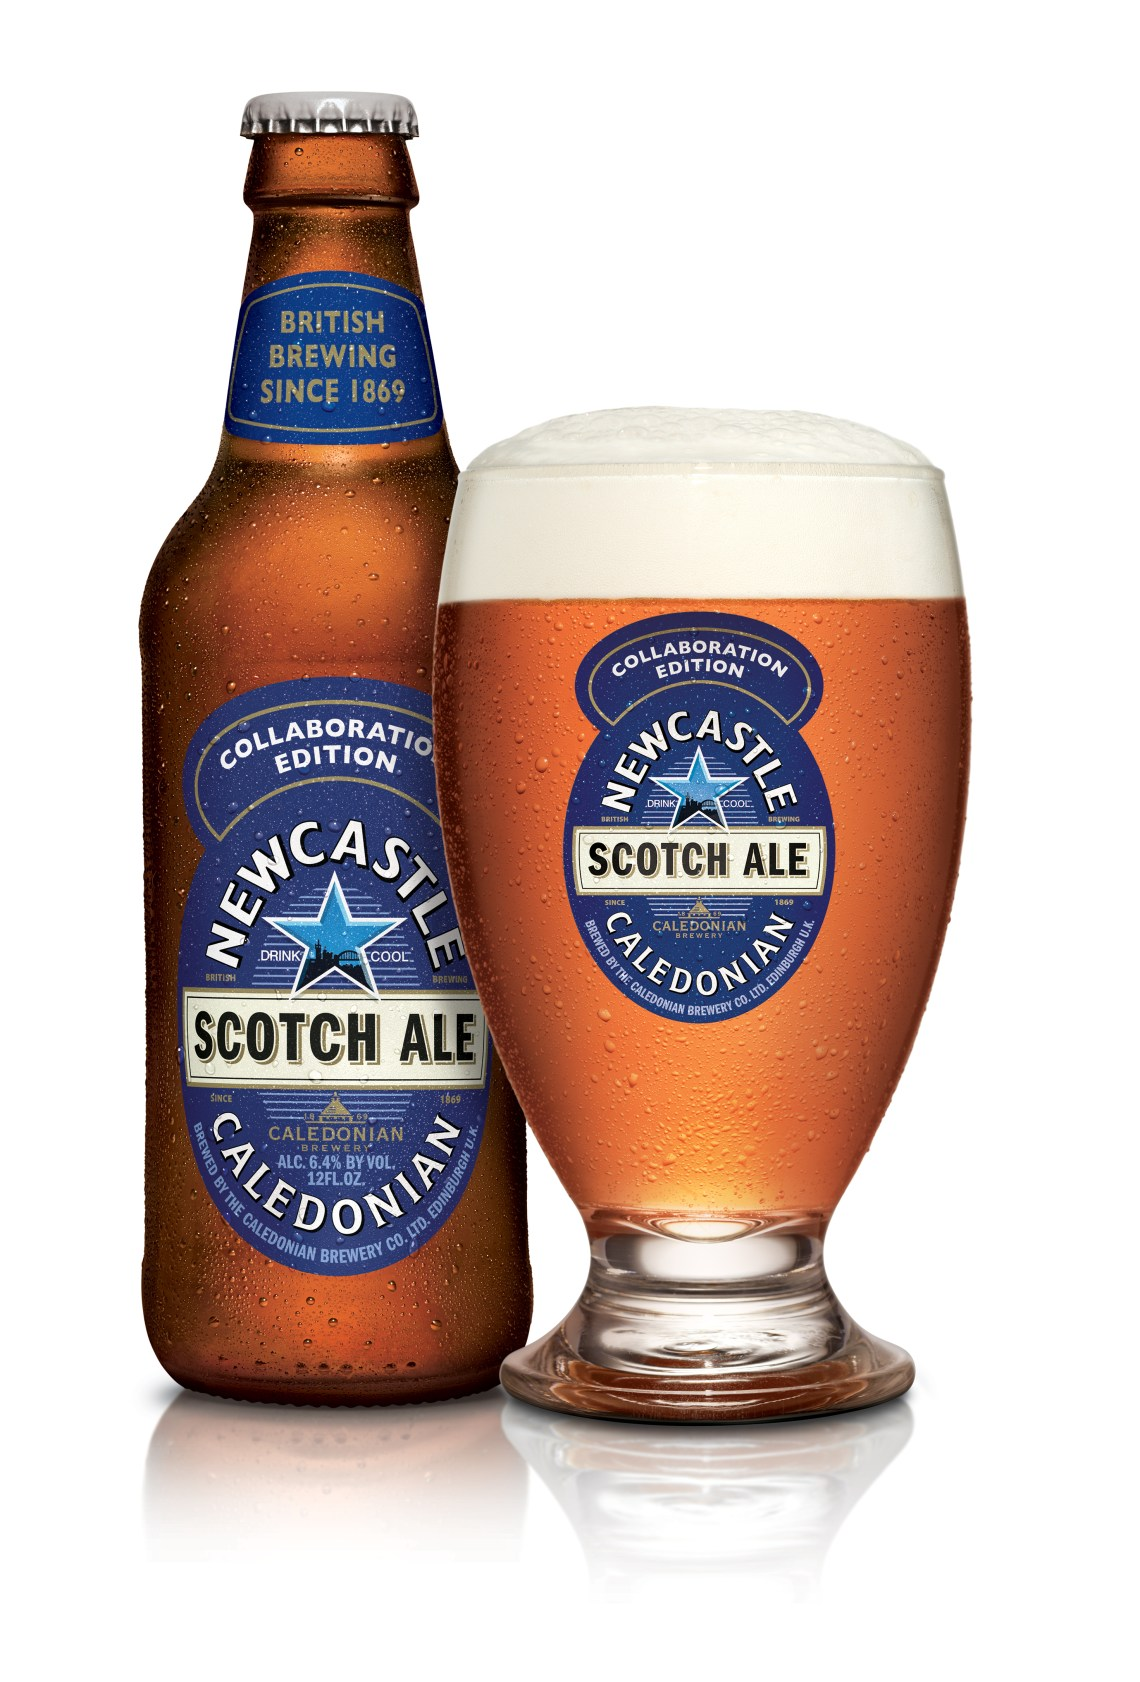 Newcastle Scotch Ale